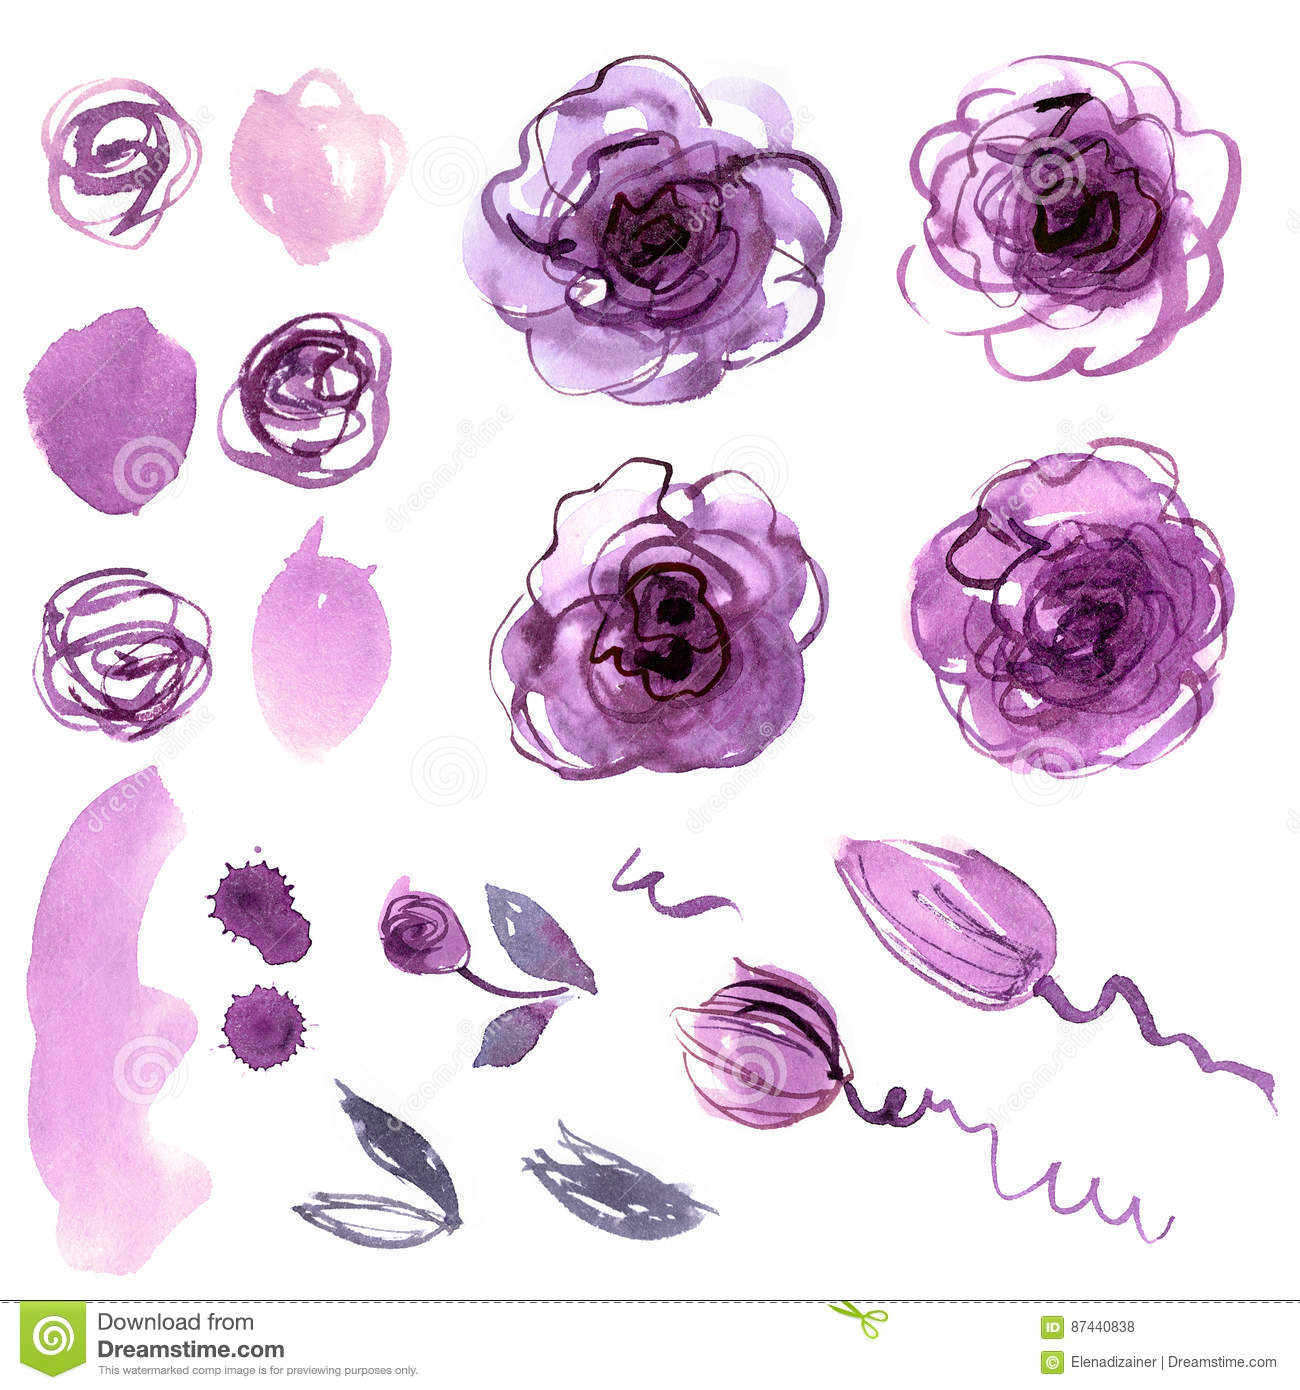 Cute watercolor hand painted flower elements.